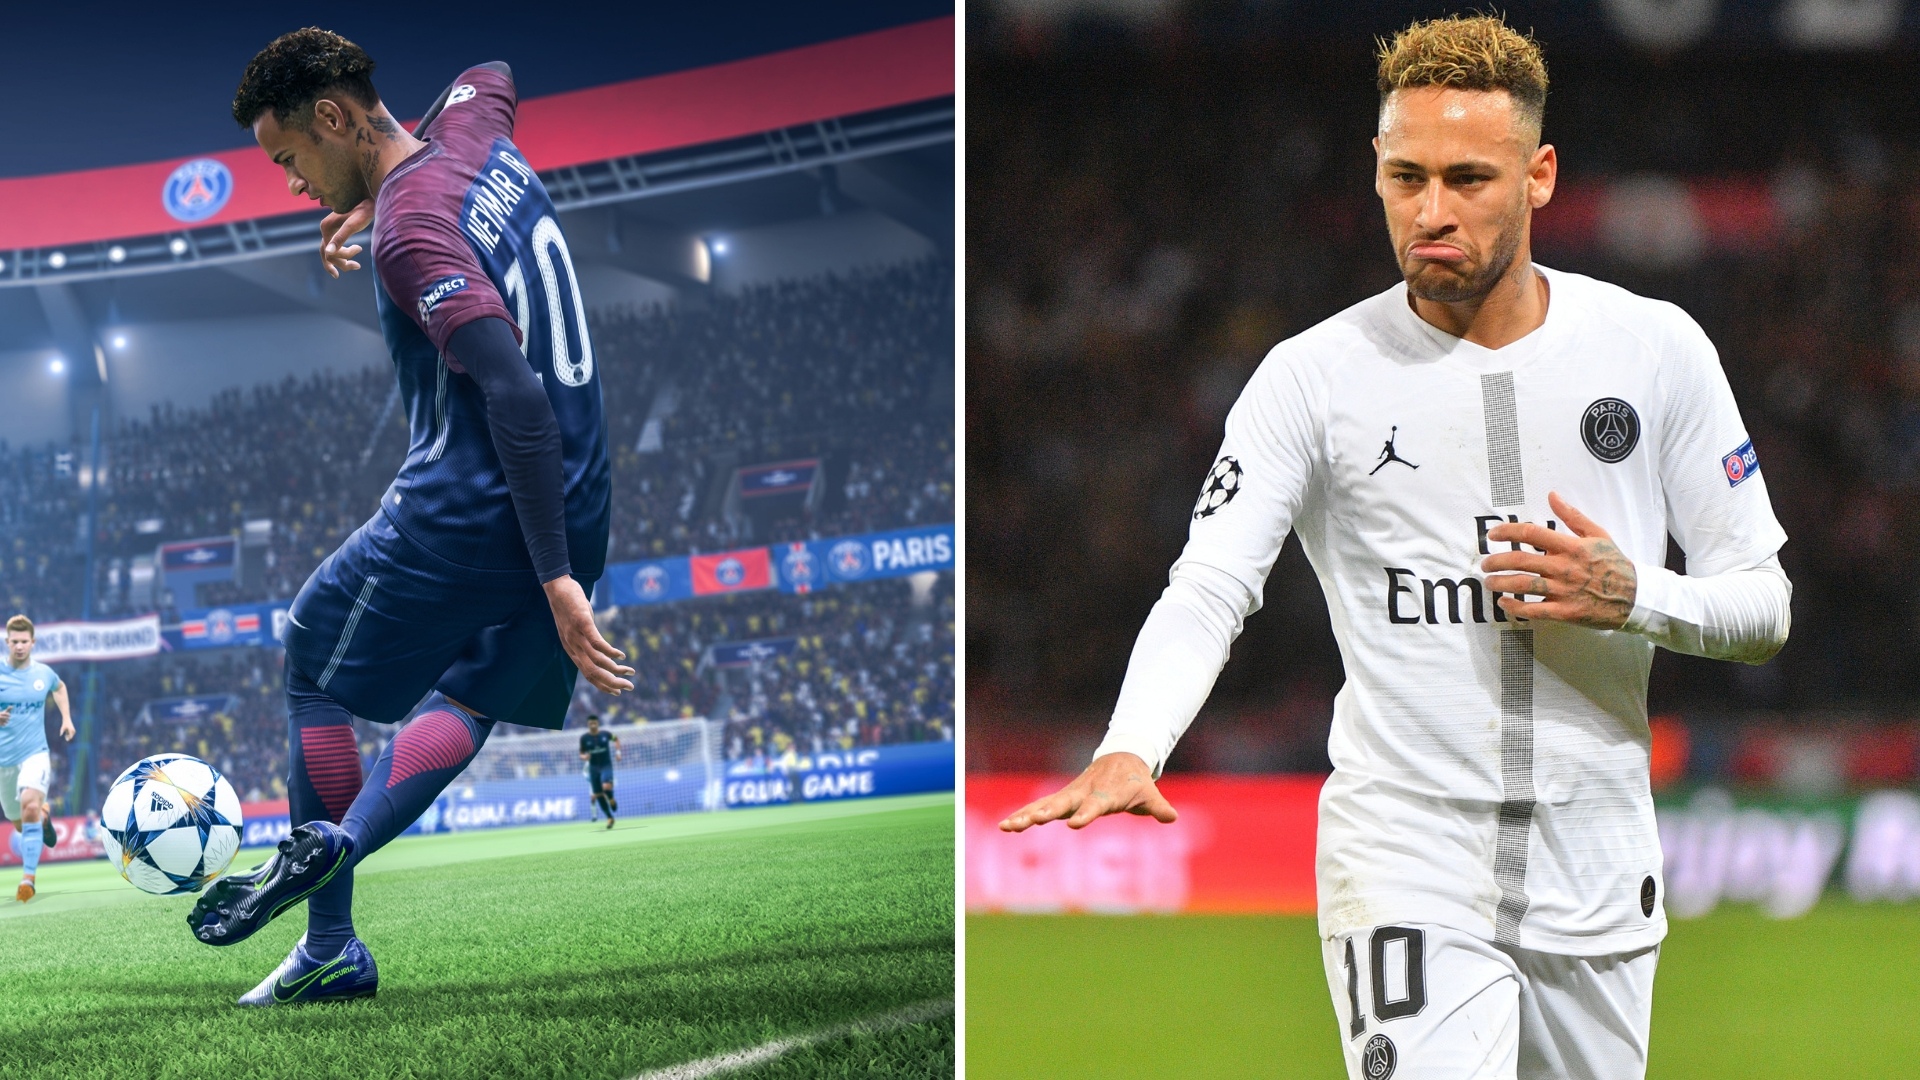 Champions League-Themed Cards For FIFA 19 Ultimate Team Released, Neymar Can Play As Striker